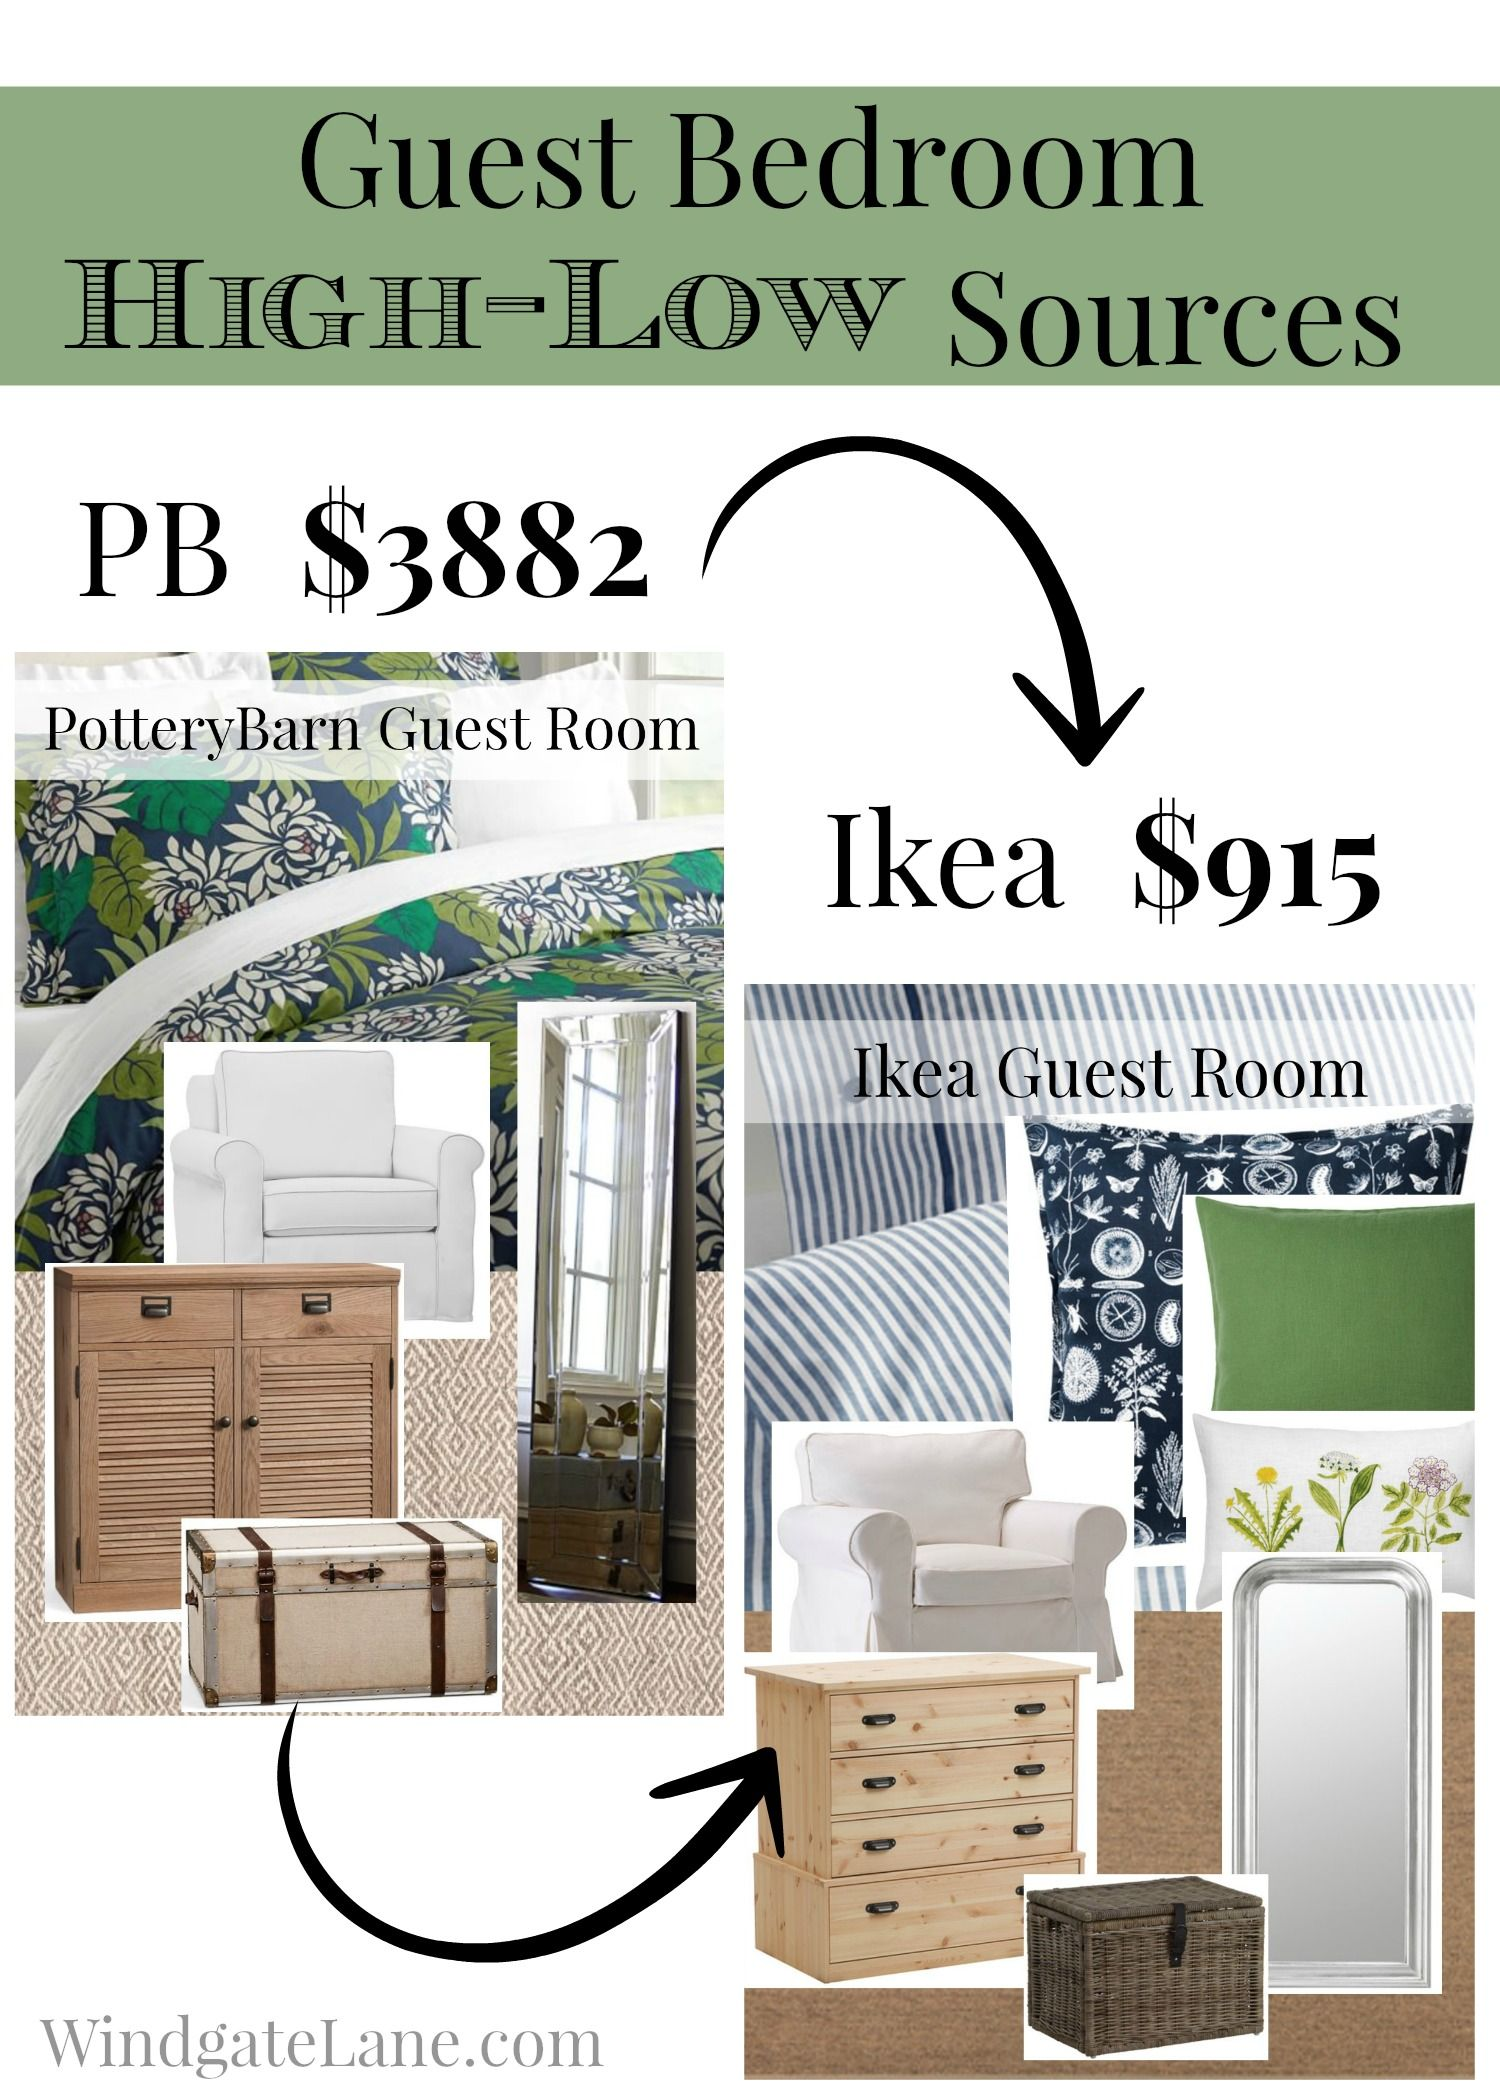 Pottery Barn vs Ikea HighLow Decorating Sources